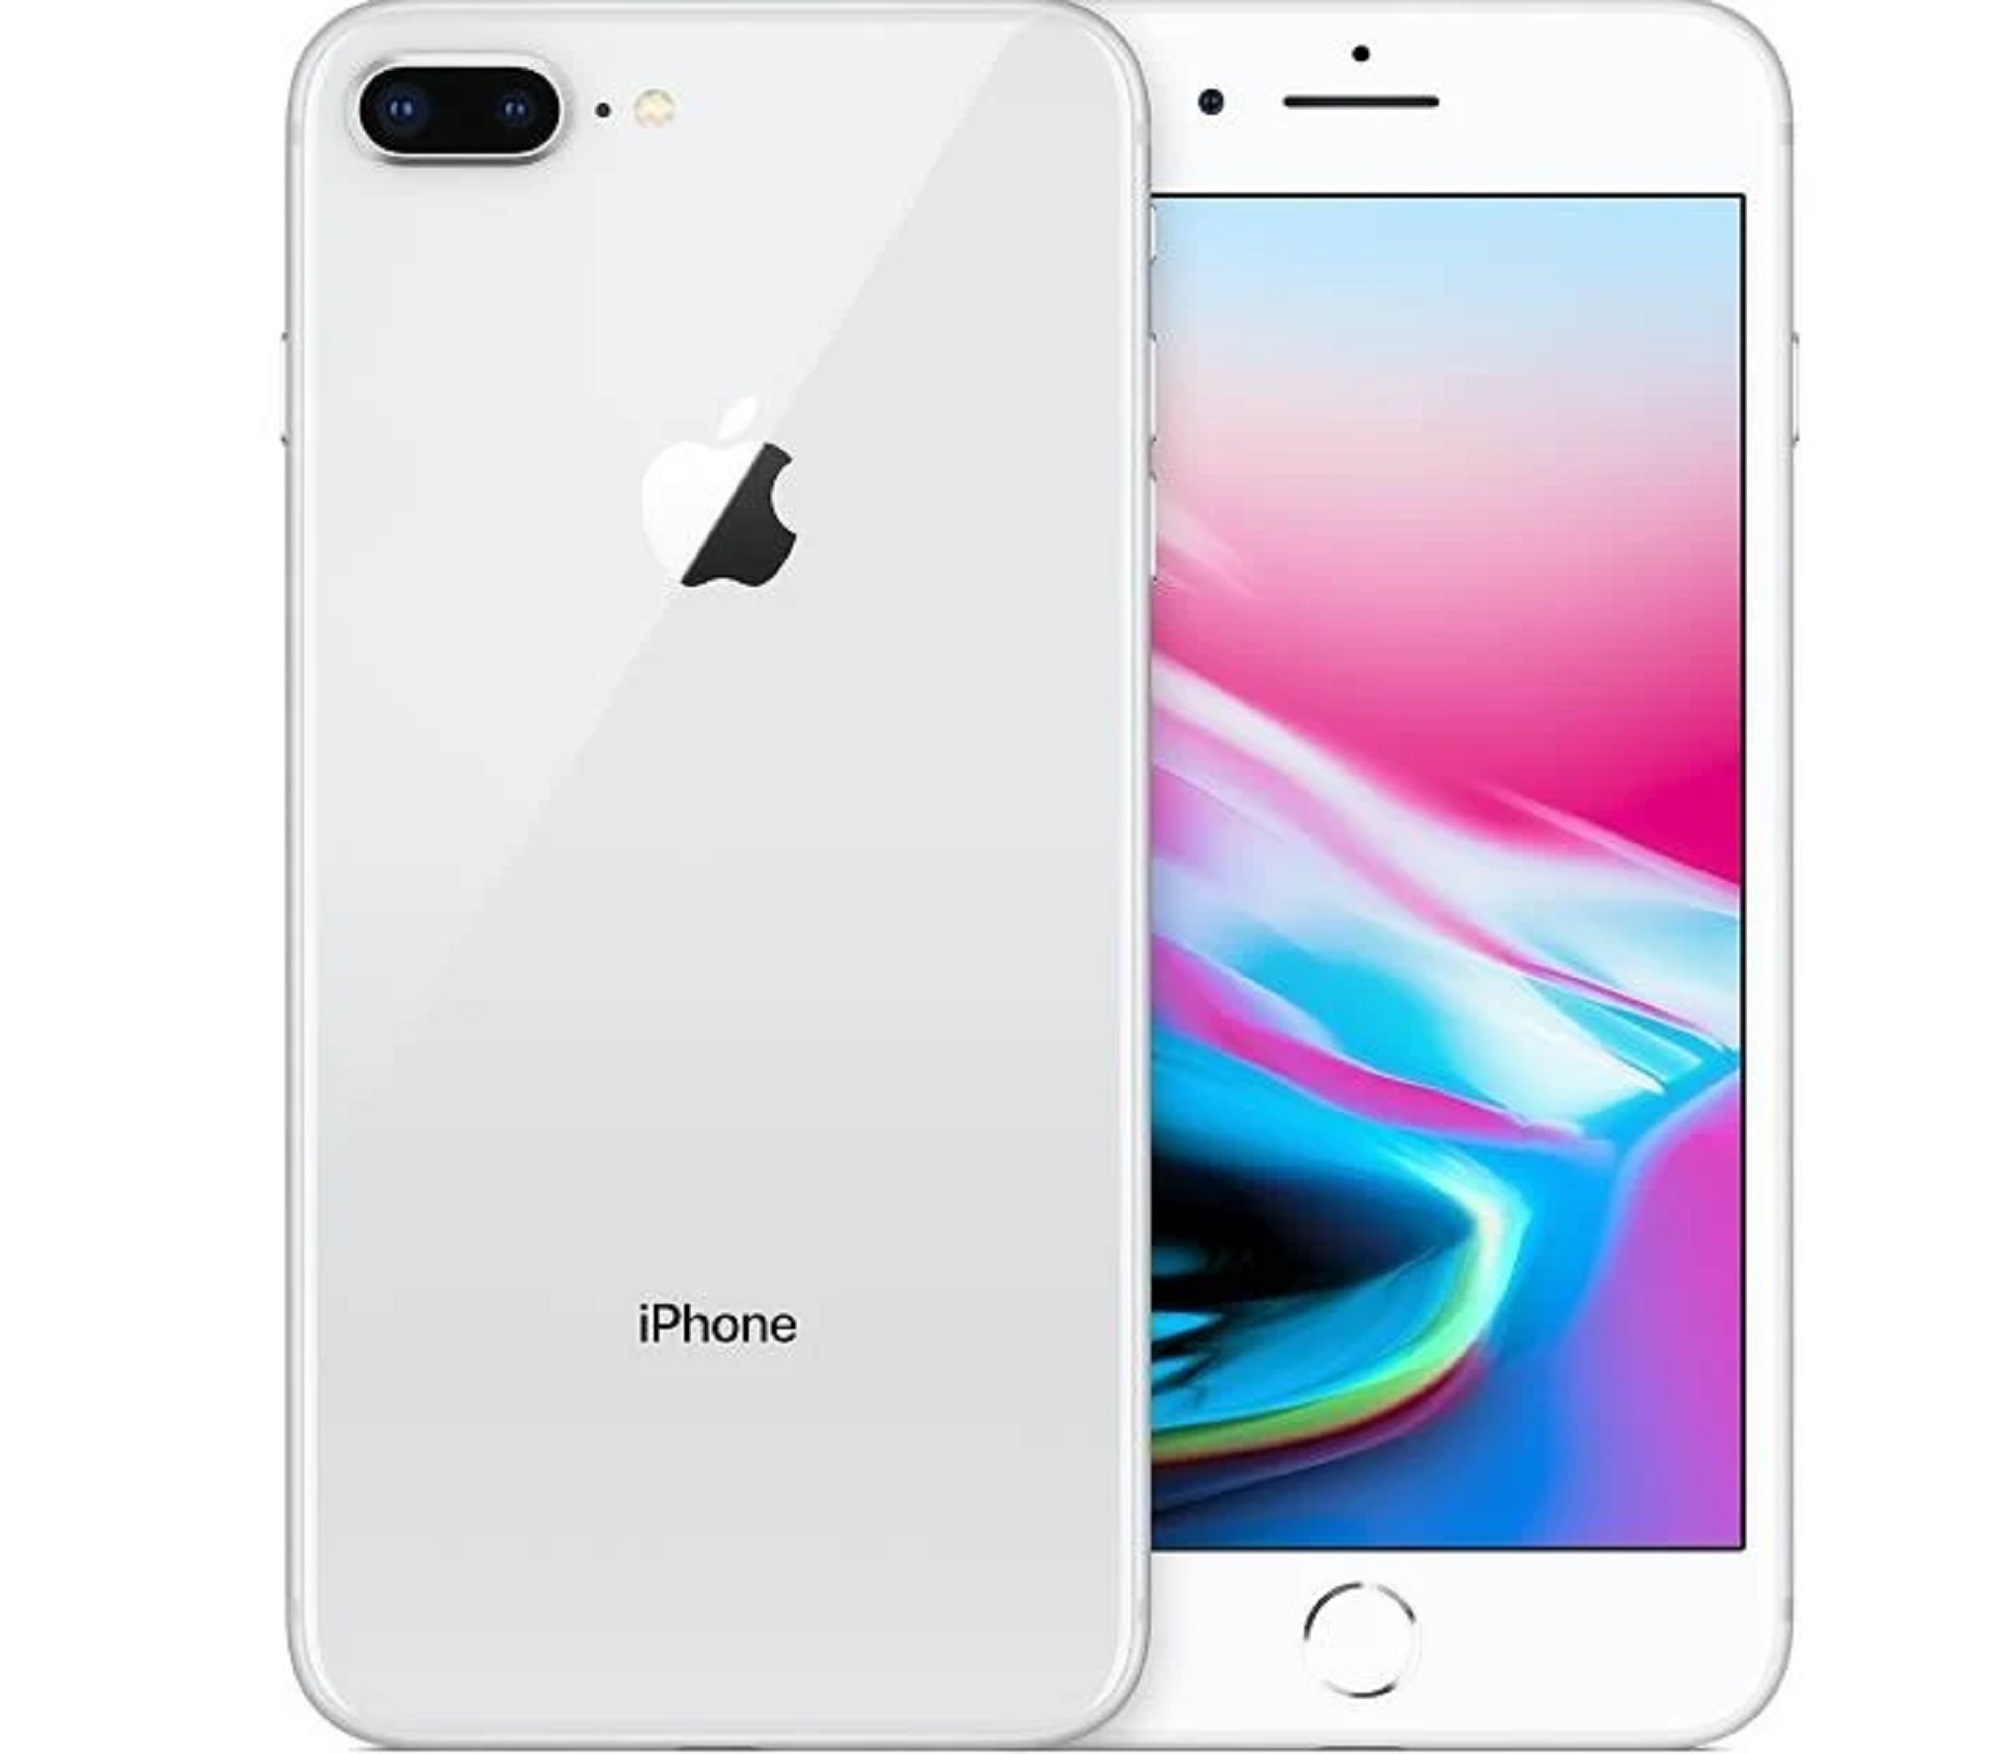 thumbnail 7 - Apple iPhone 8 Plus 64GB Factory Unlocked Smartphone